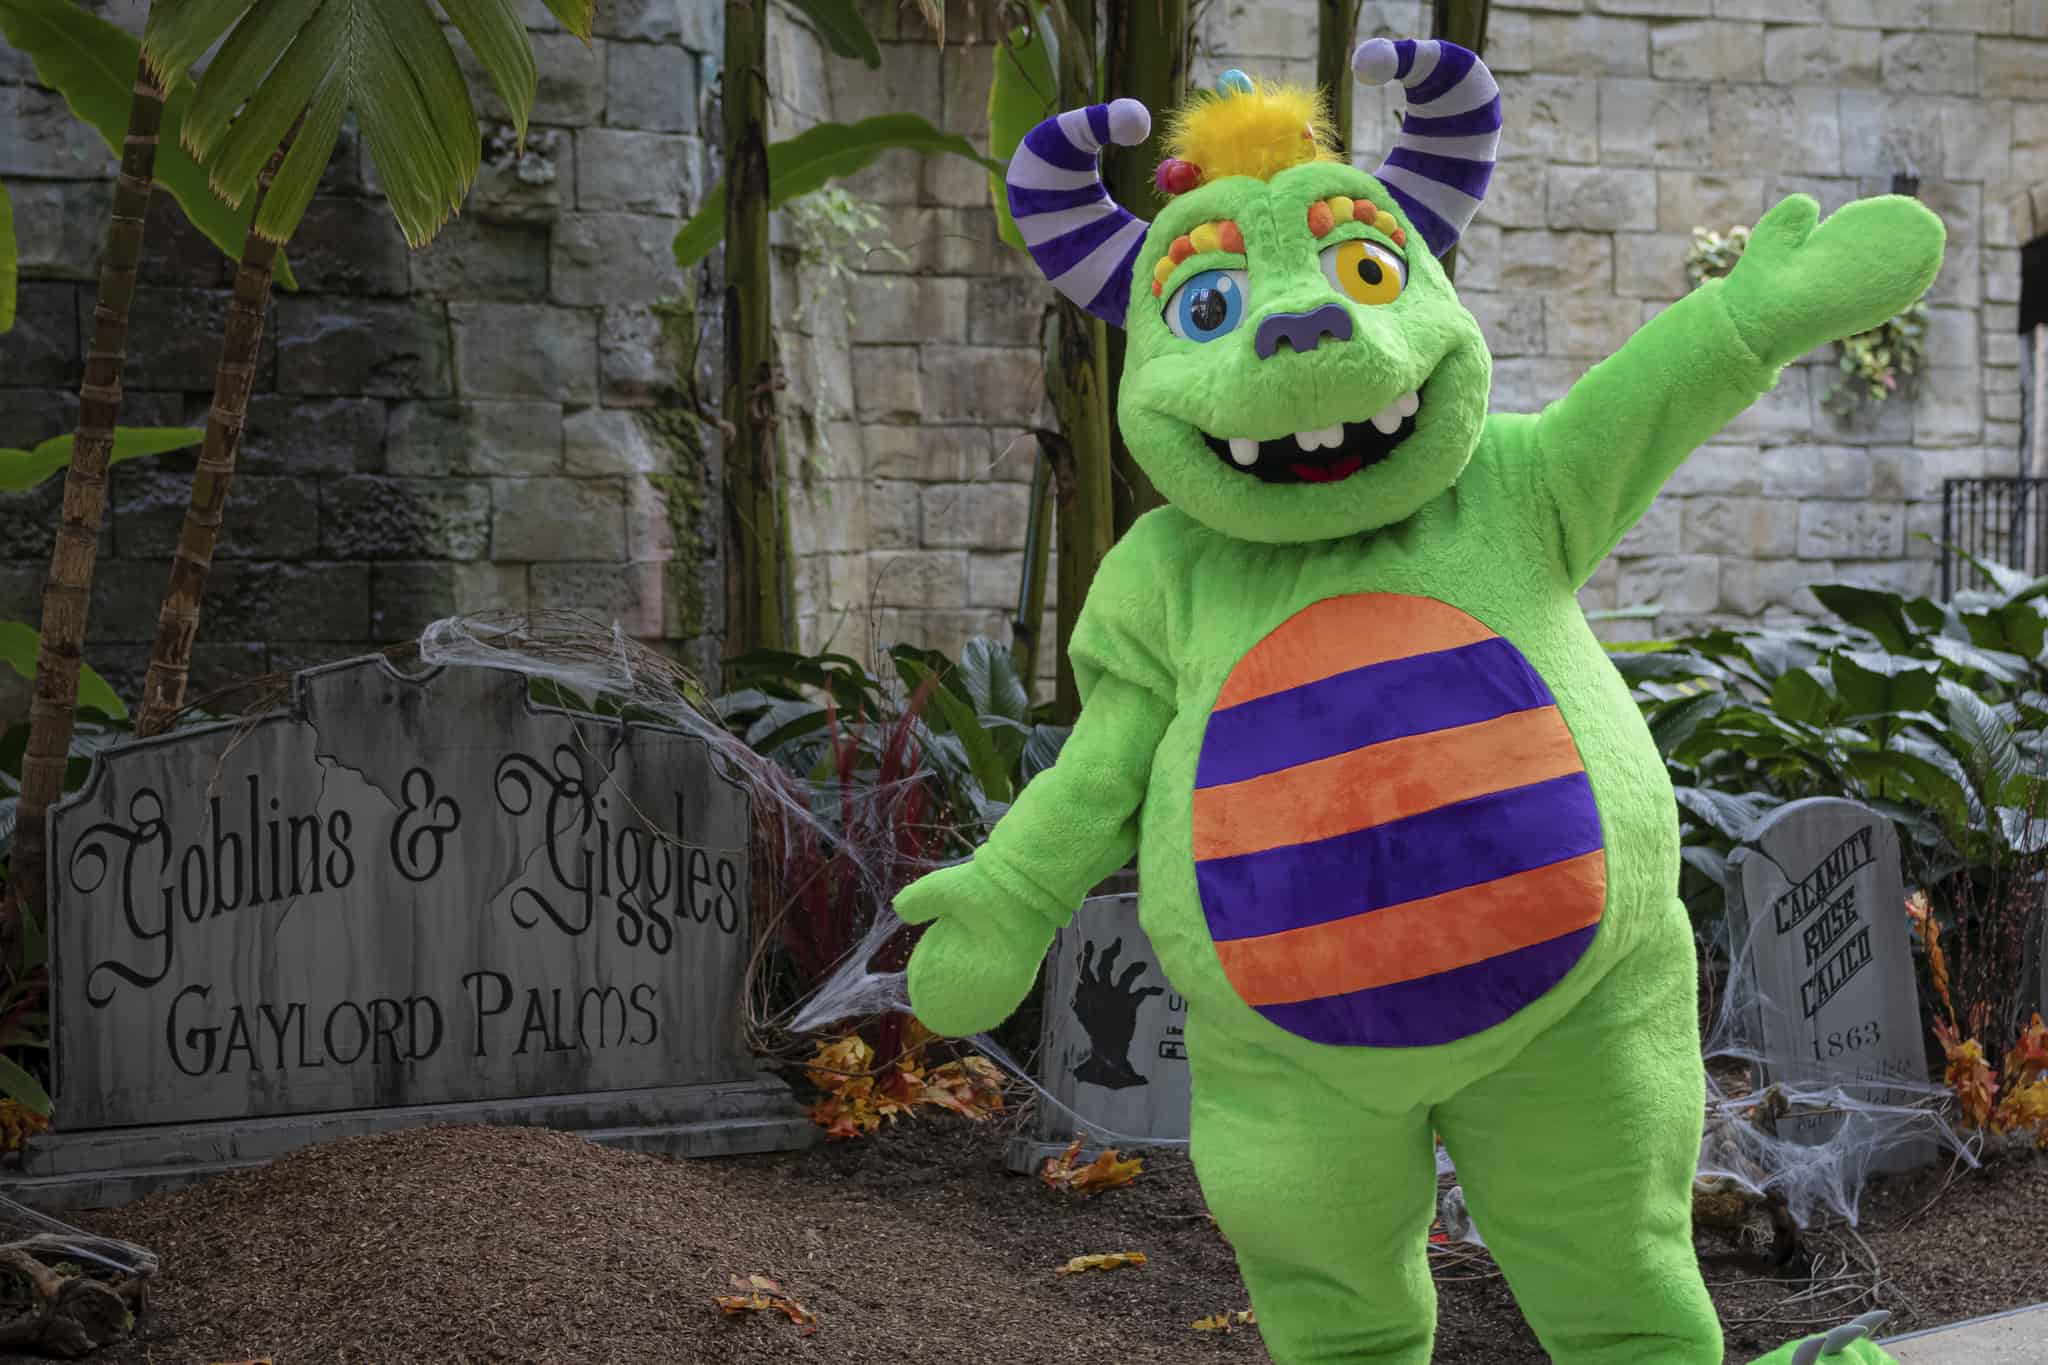 Gaylord Palms Goblins and Giggles character